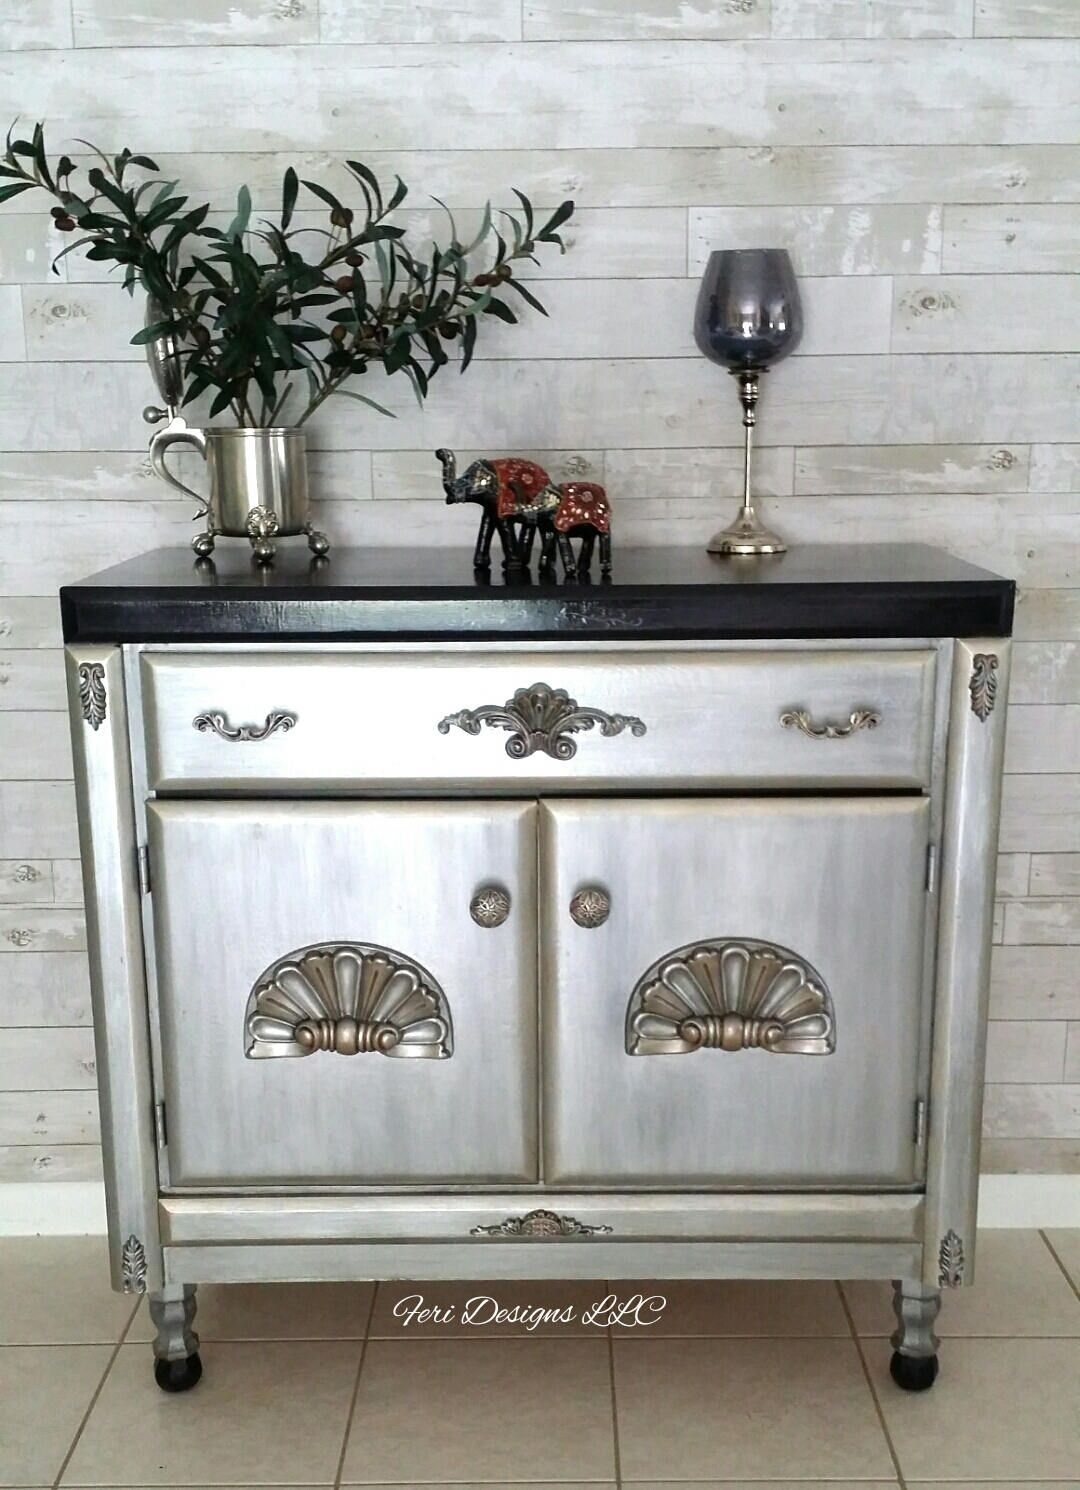 silver painted furniture. CUSTOM ORDER-Vintage Looks Metallic Silver Paint \u0026 Effects Small Buffet/Console By FERIDESIGNS Painted Furniture